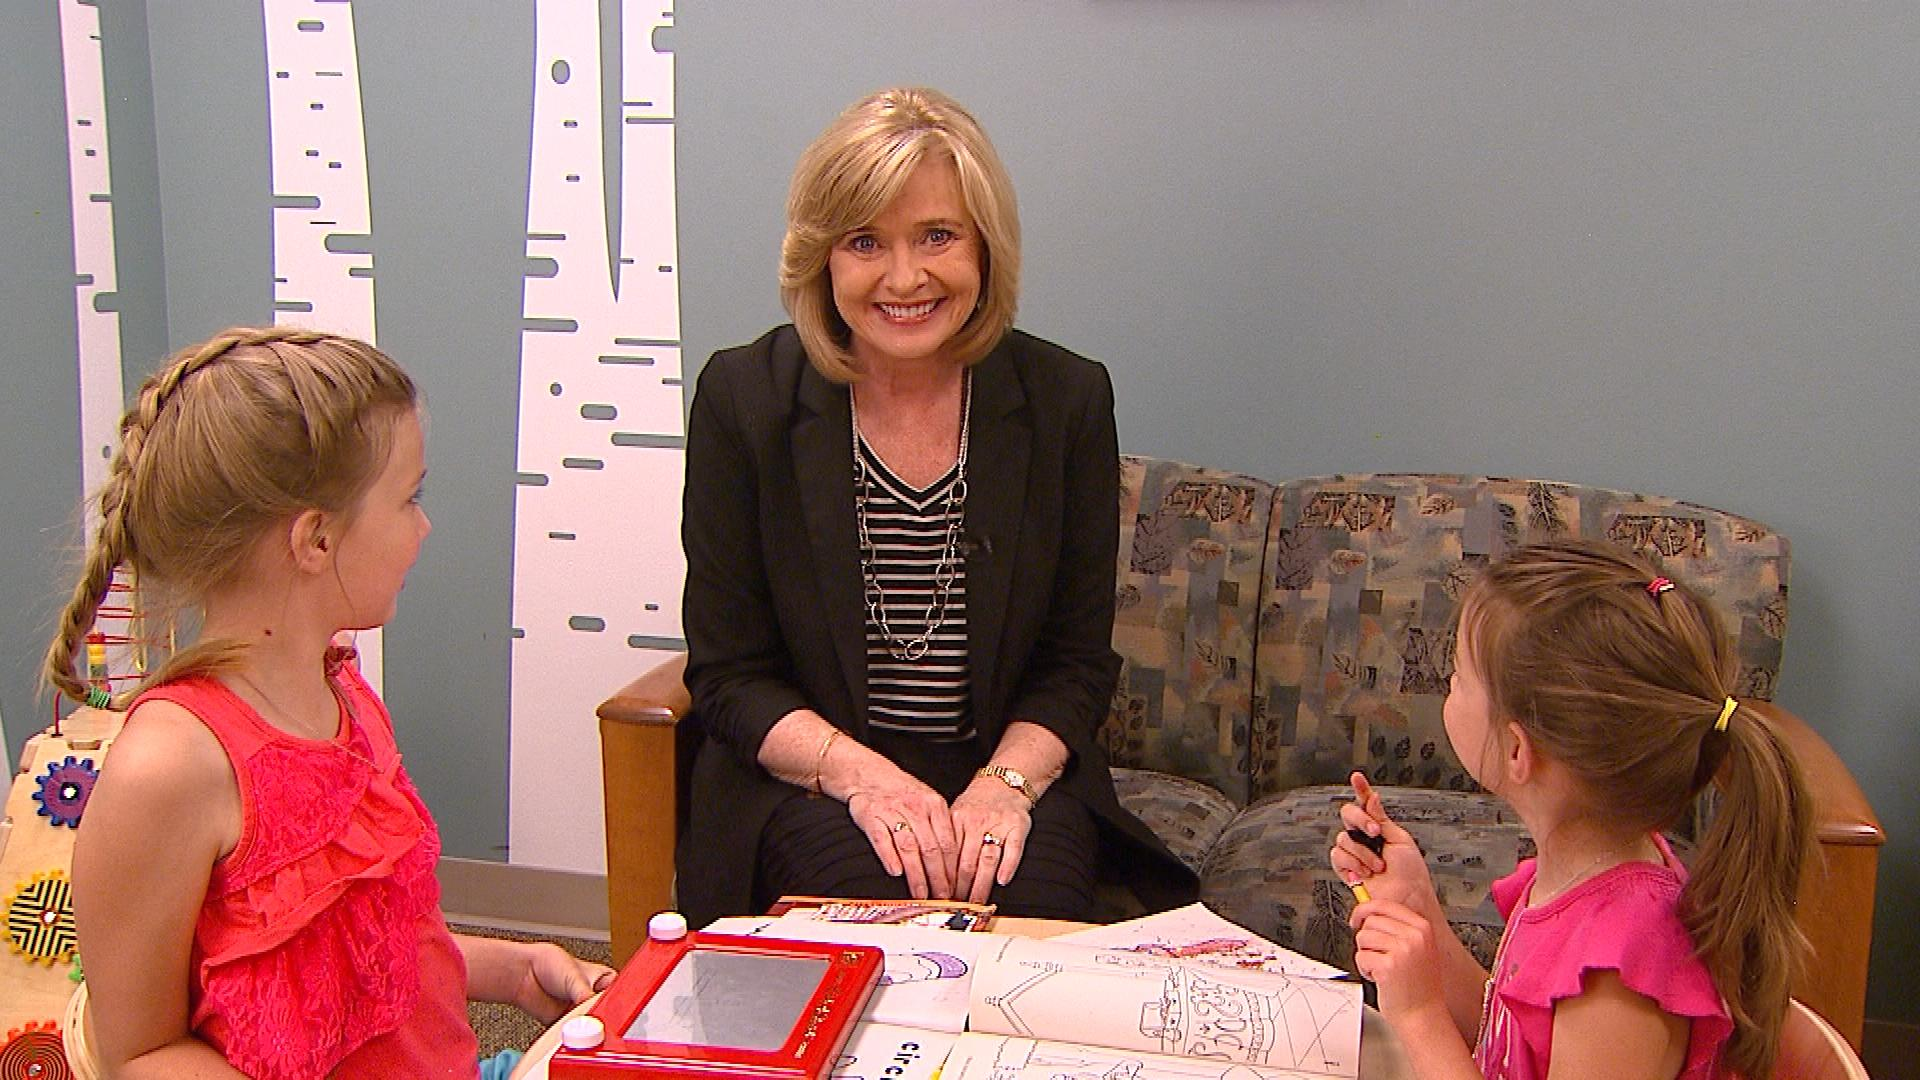 CBS4 Health Specialist Kathy Walsh in the Bright Spaces room (credit: CBS)